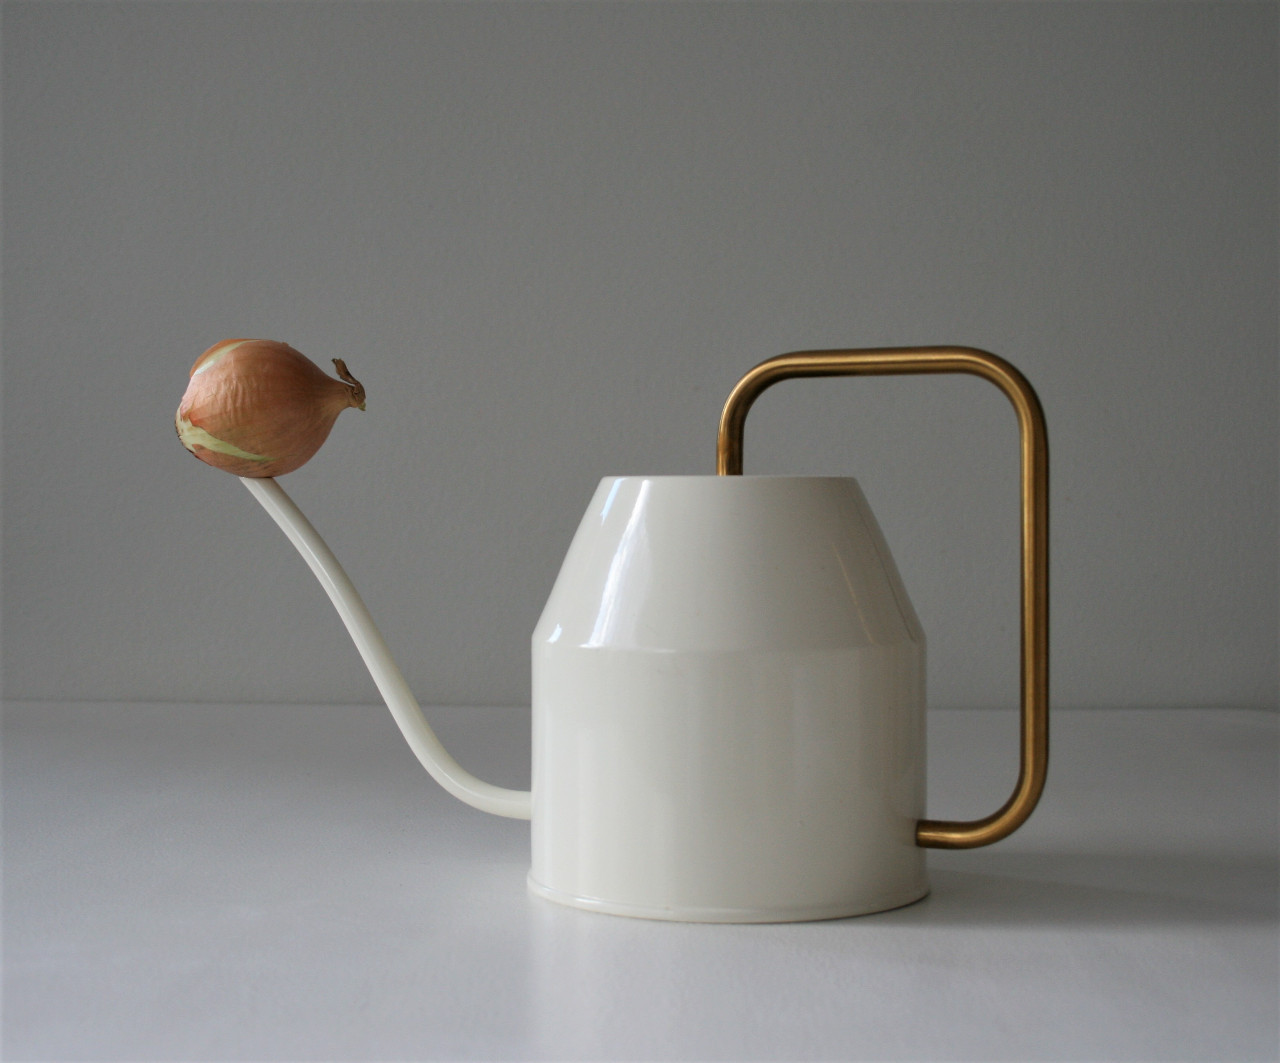 Watering can and onion (2020)